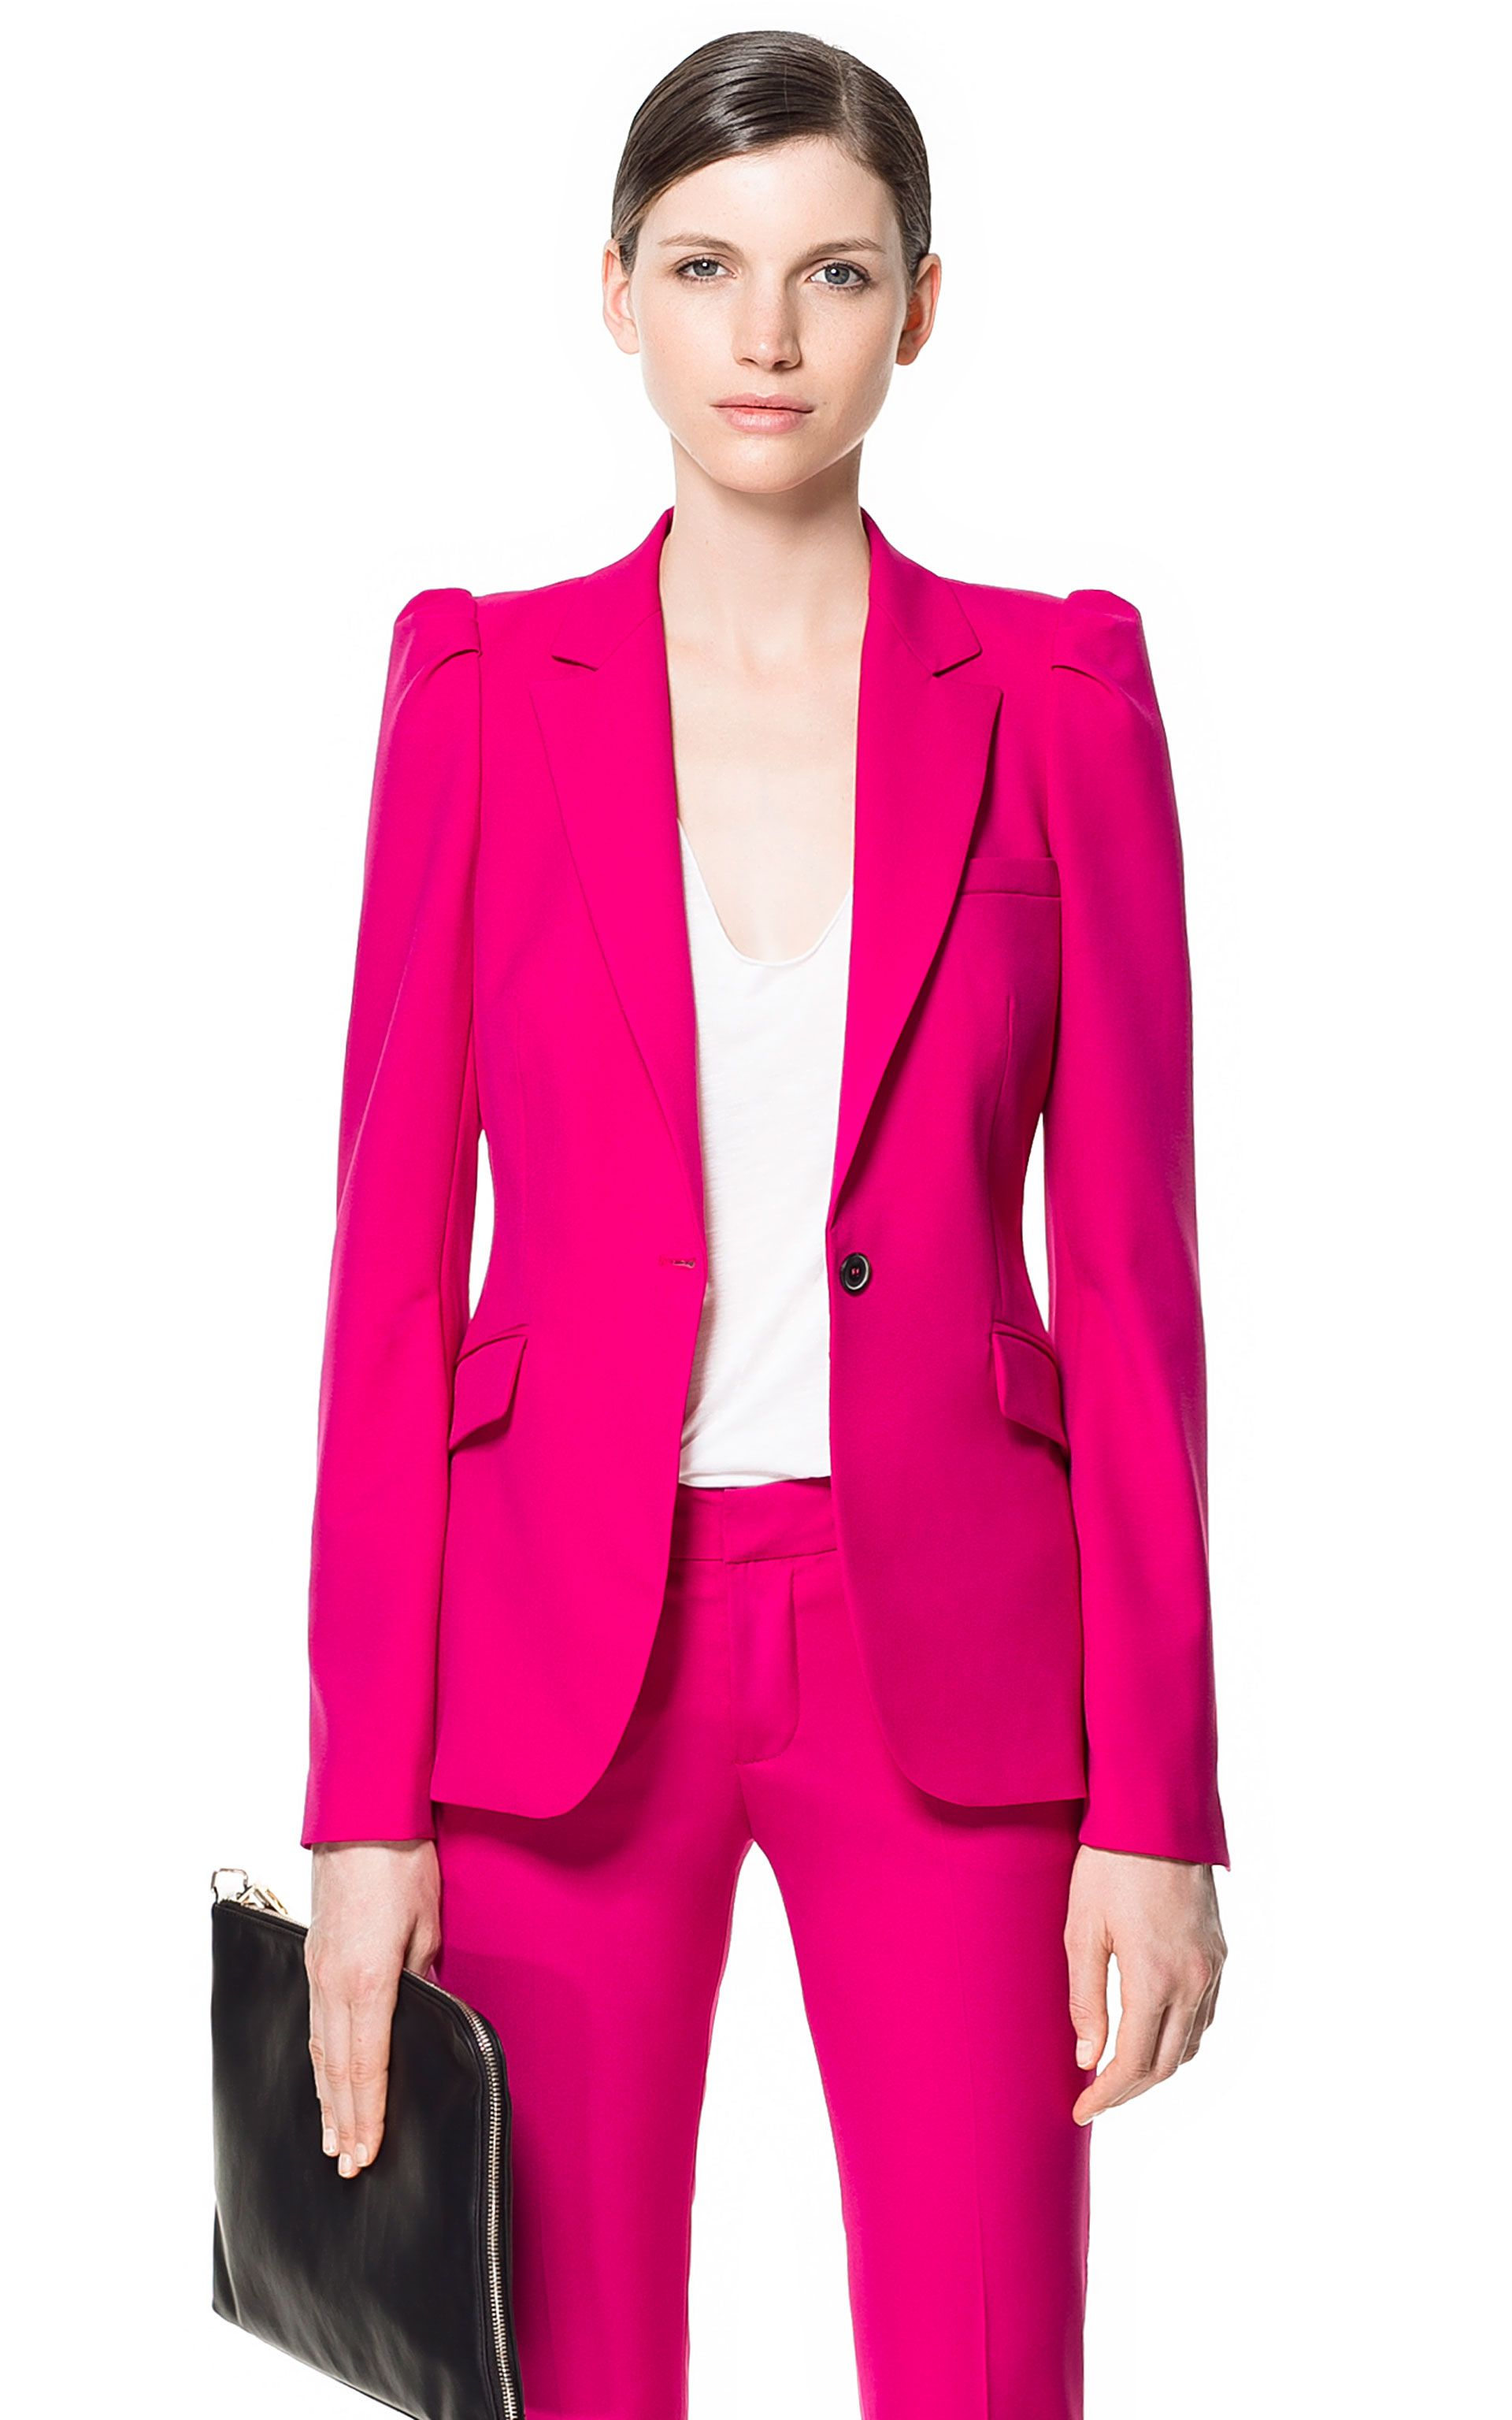 91d02b5f BLAZER WITH PUFFED SHOULDERS - Blazers - Woman - ZARA United States ...